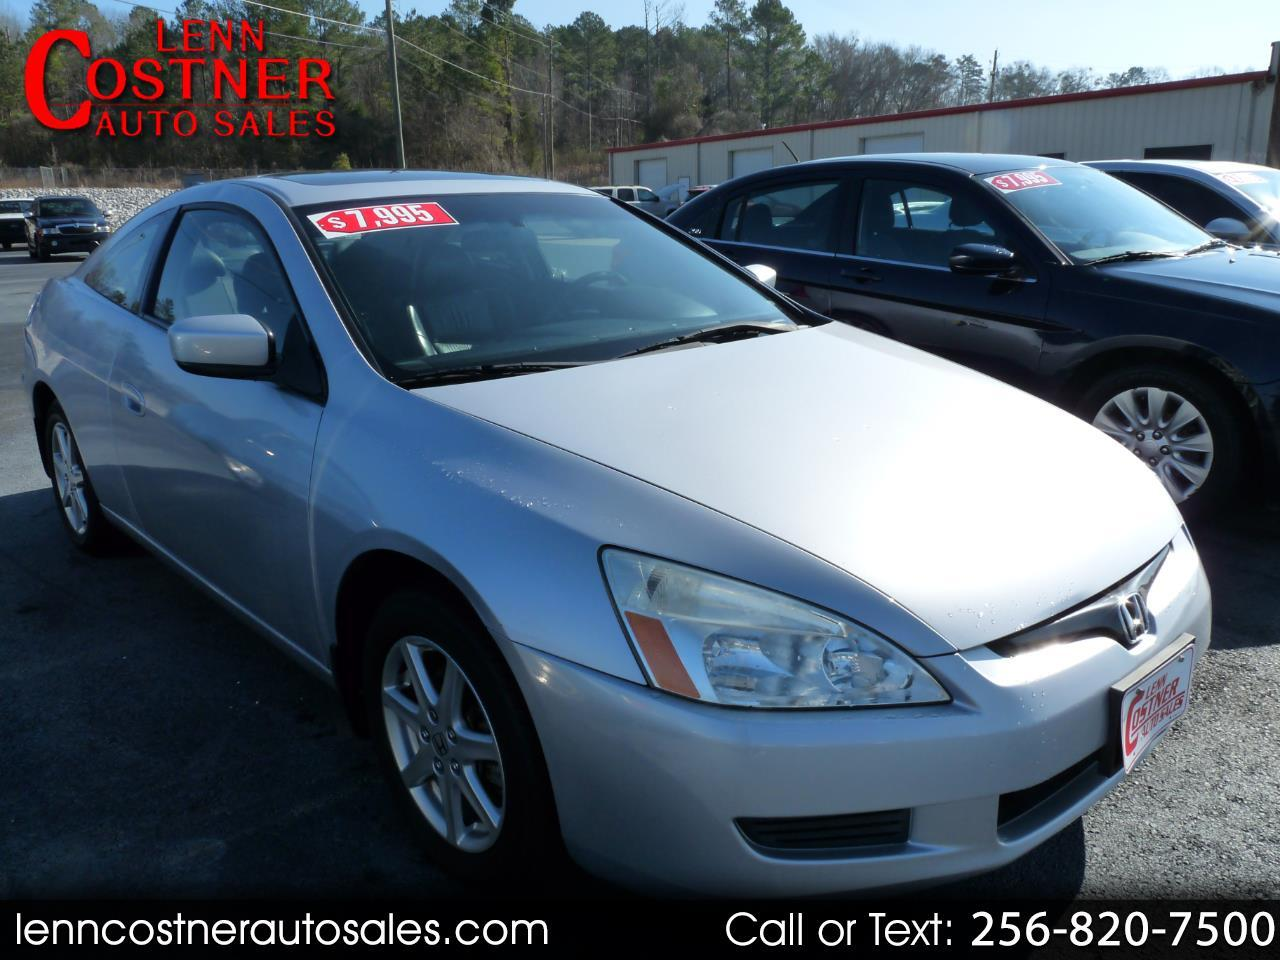 2004 Honda Accord Cpe EX Auto V6 w/Leather/XM